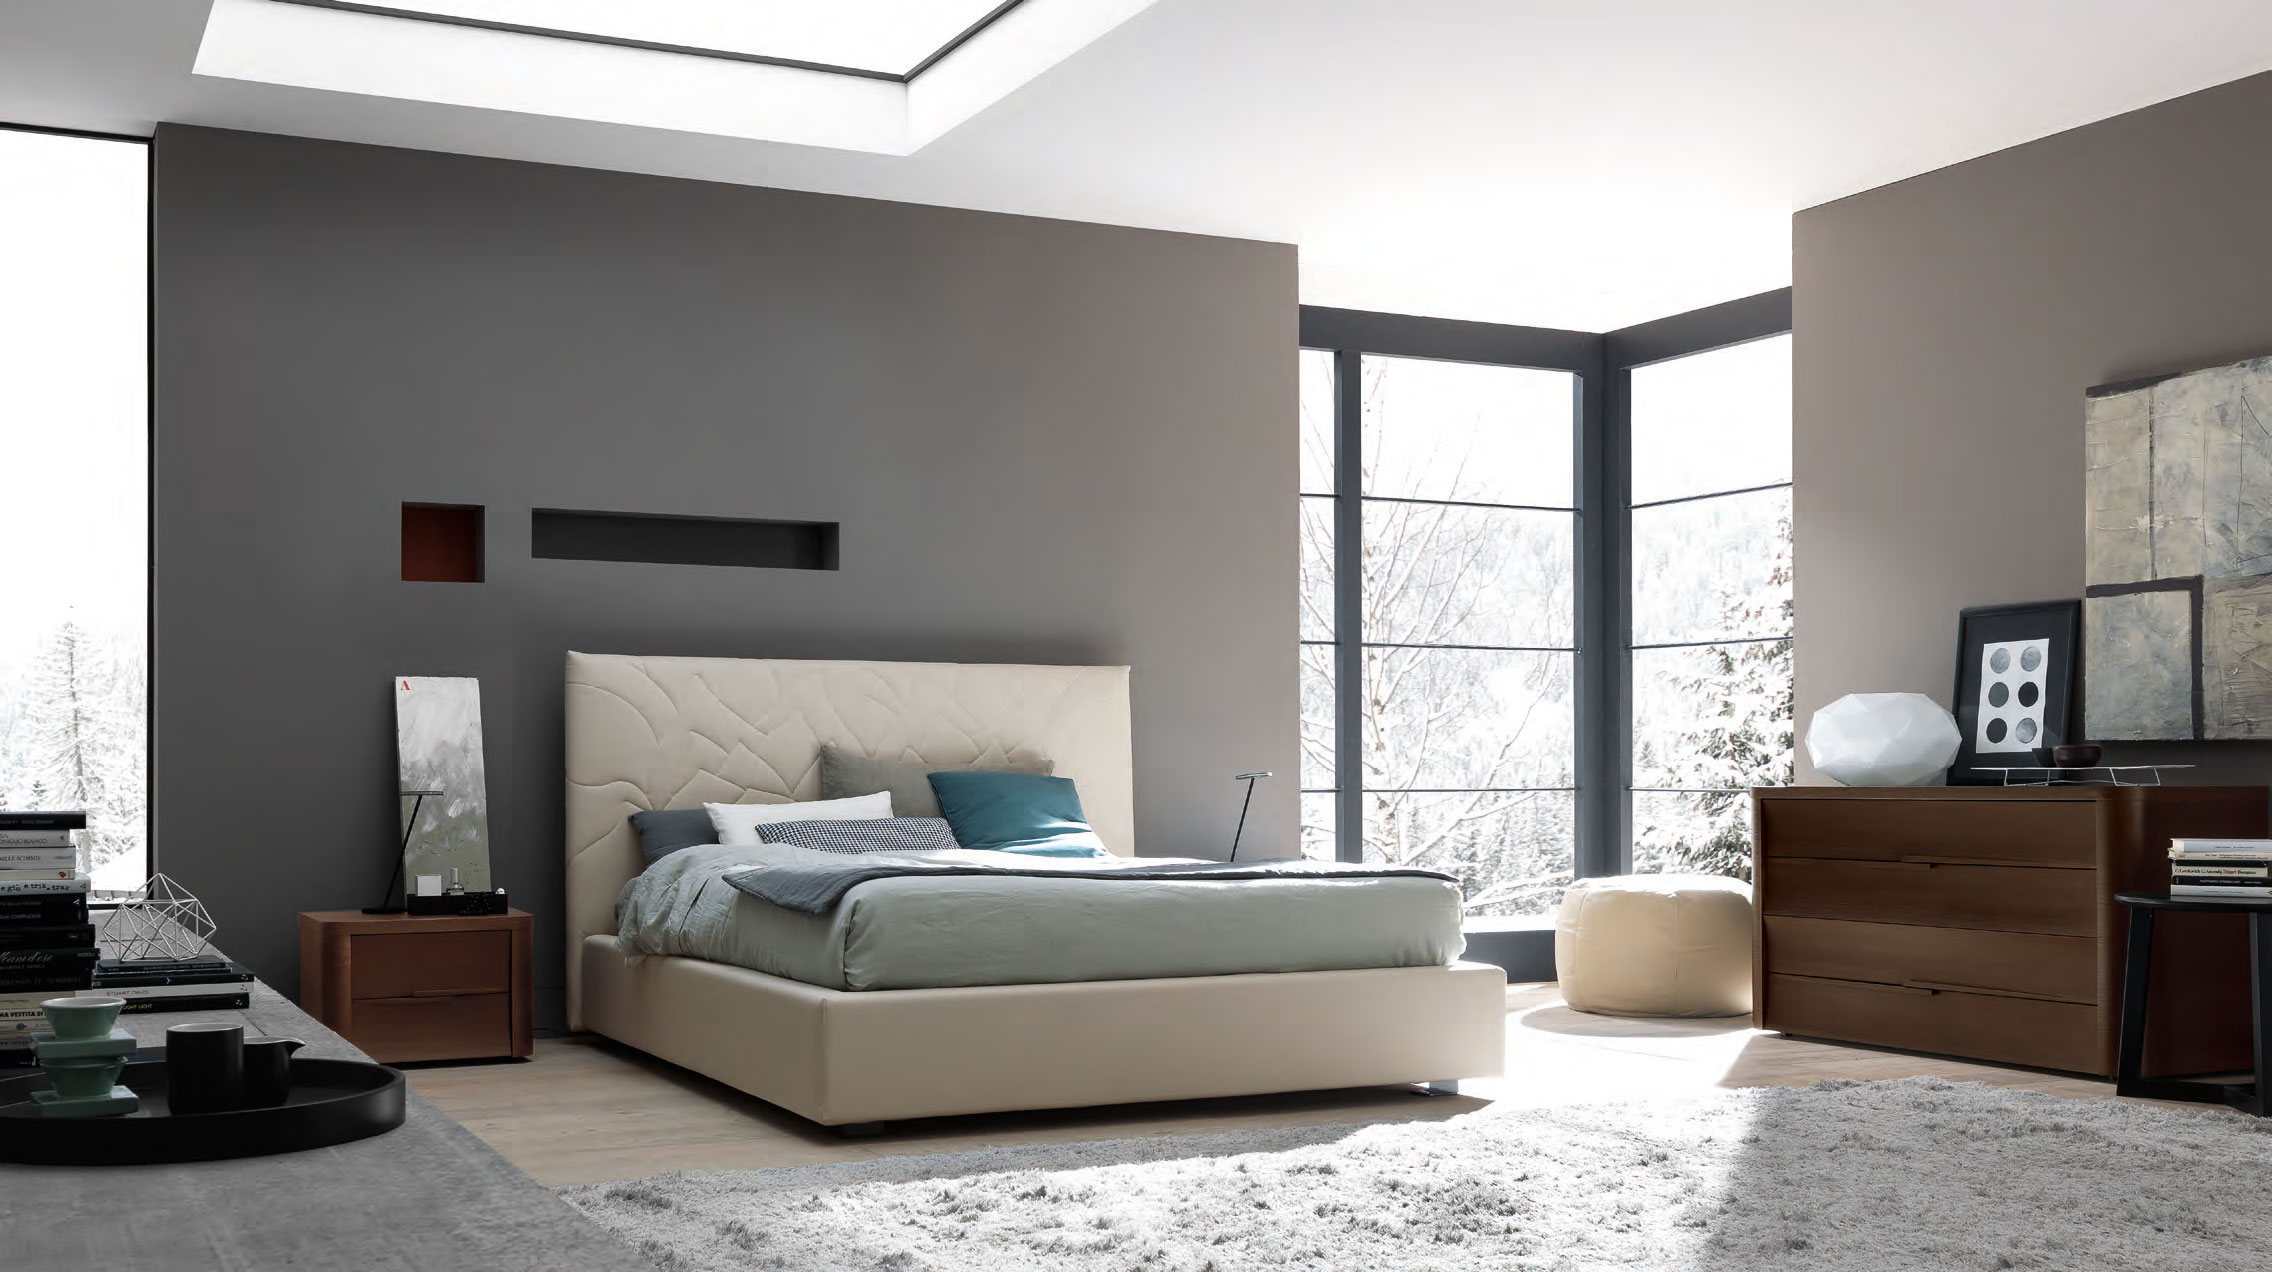 40 Modern Bedroom For Your Home - The WoW Style on Room Decore  id=84475